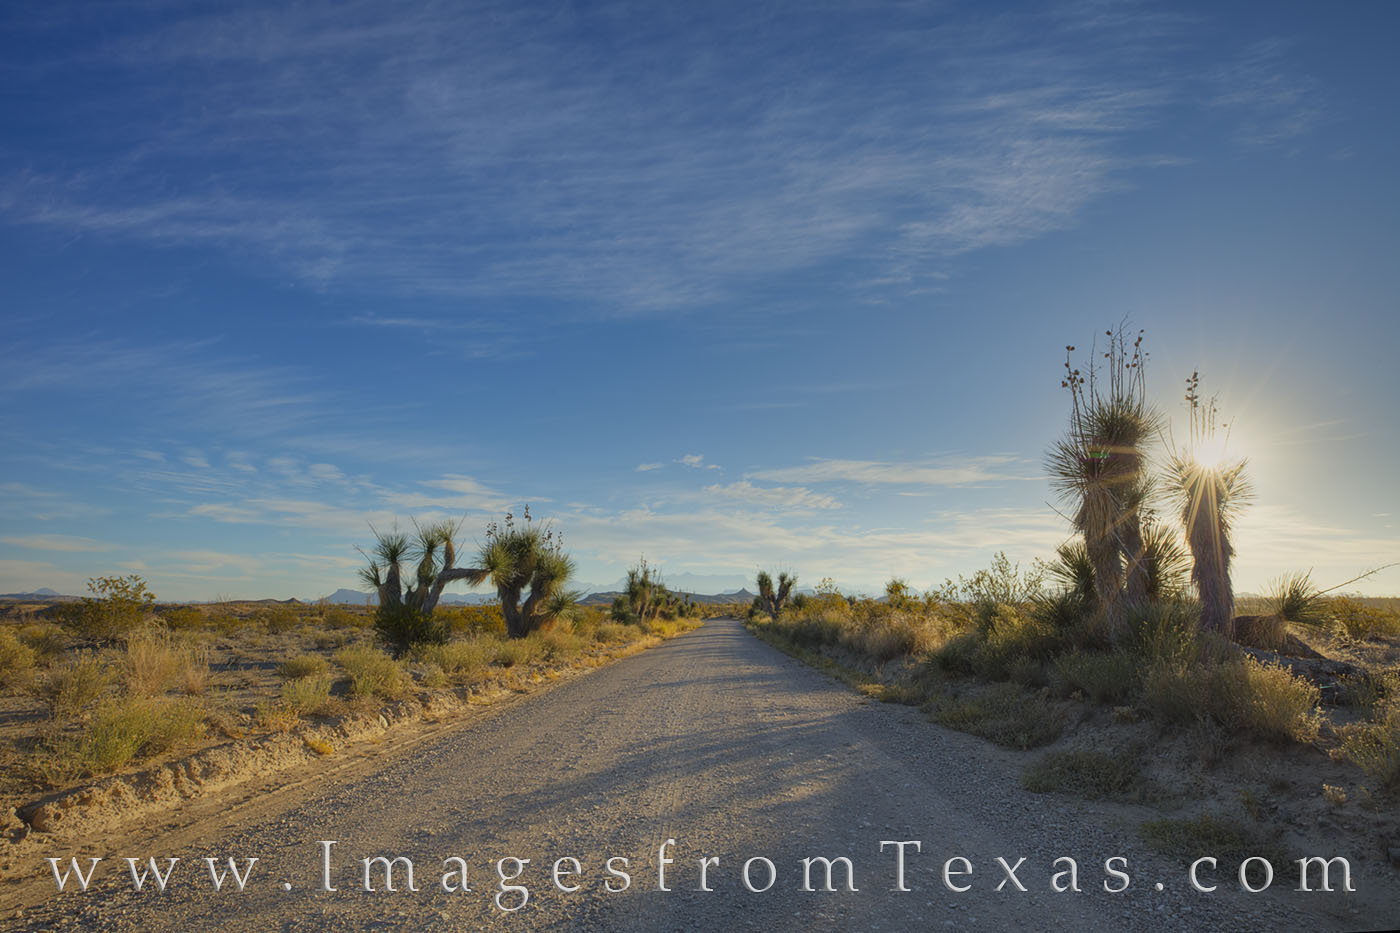 old maverick road, big bend national park, big bend roads, big bend images, chisos mountains, chihuahuan desert, santa elena canyon, texas drives, texas landscapes, photo